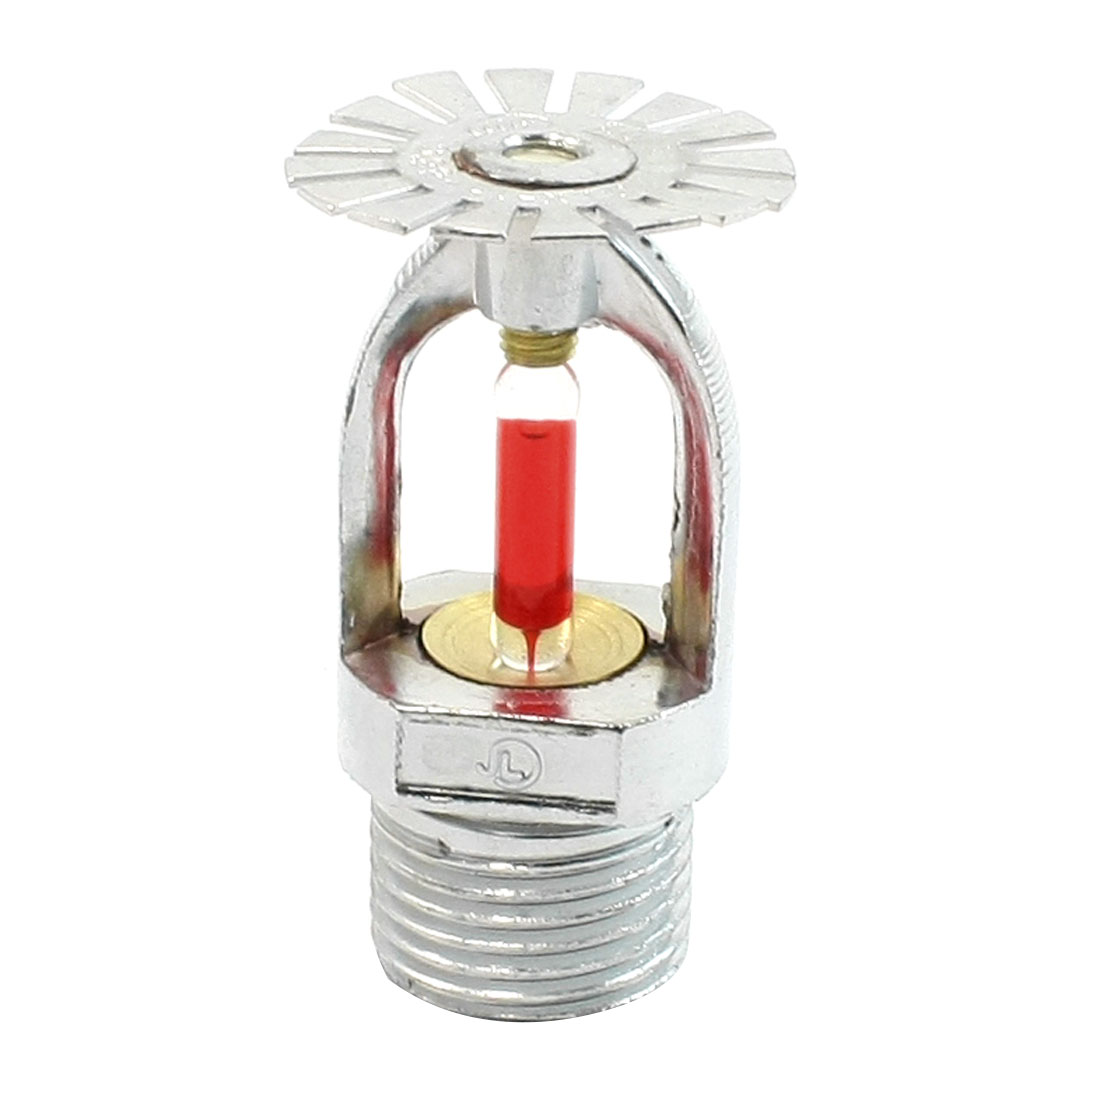 Red Bulb Silver Tone 20mm Dia Thread Water Spraying Fire Sprinkler Head